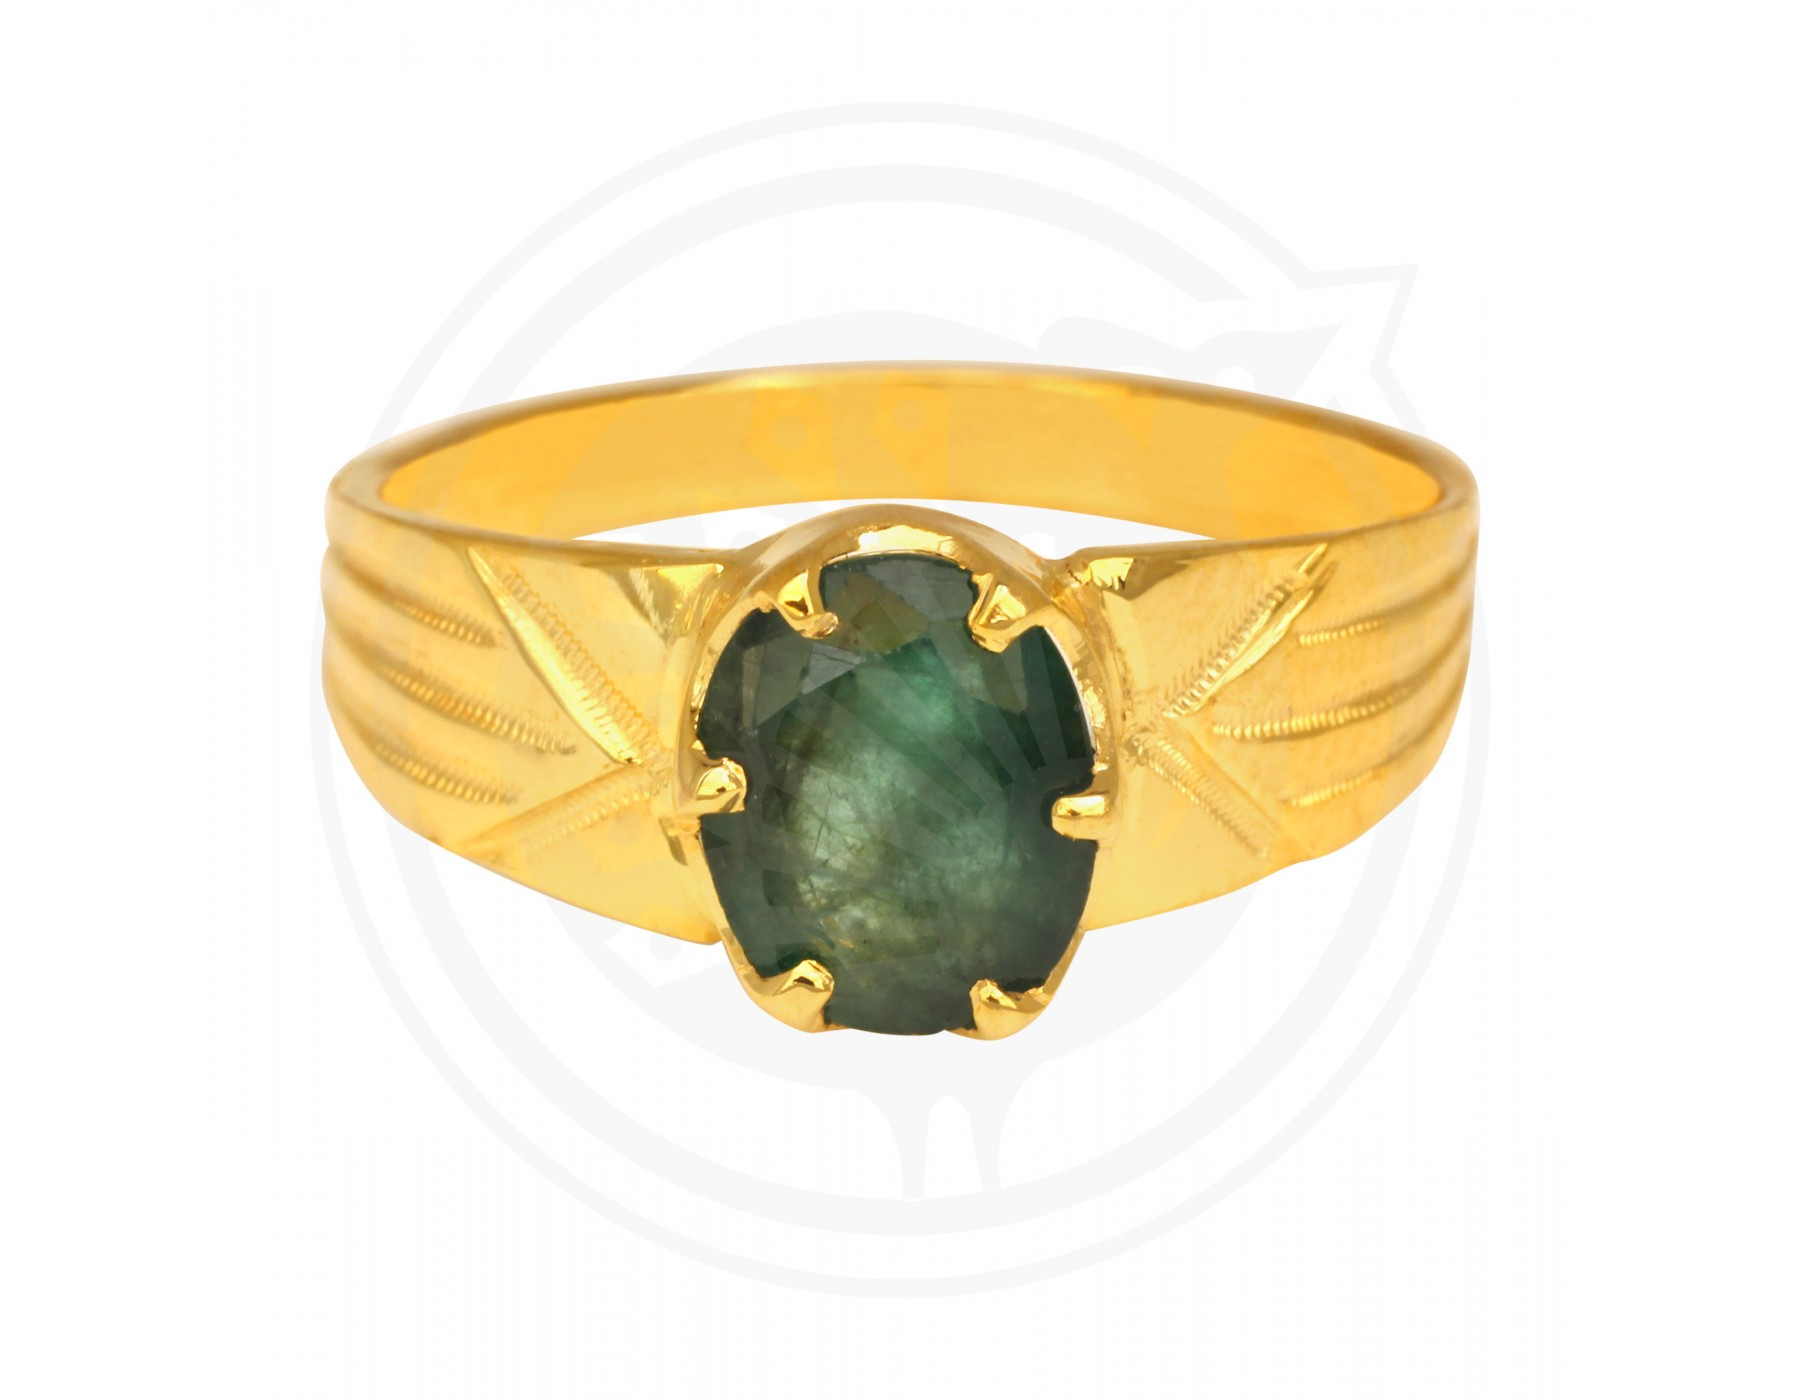 for natural dhgate com gems ring emerald rings from real product silver sterling women men or perfectjewelry